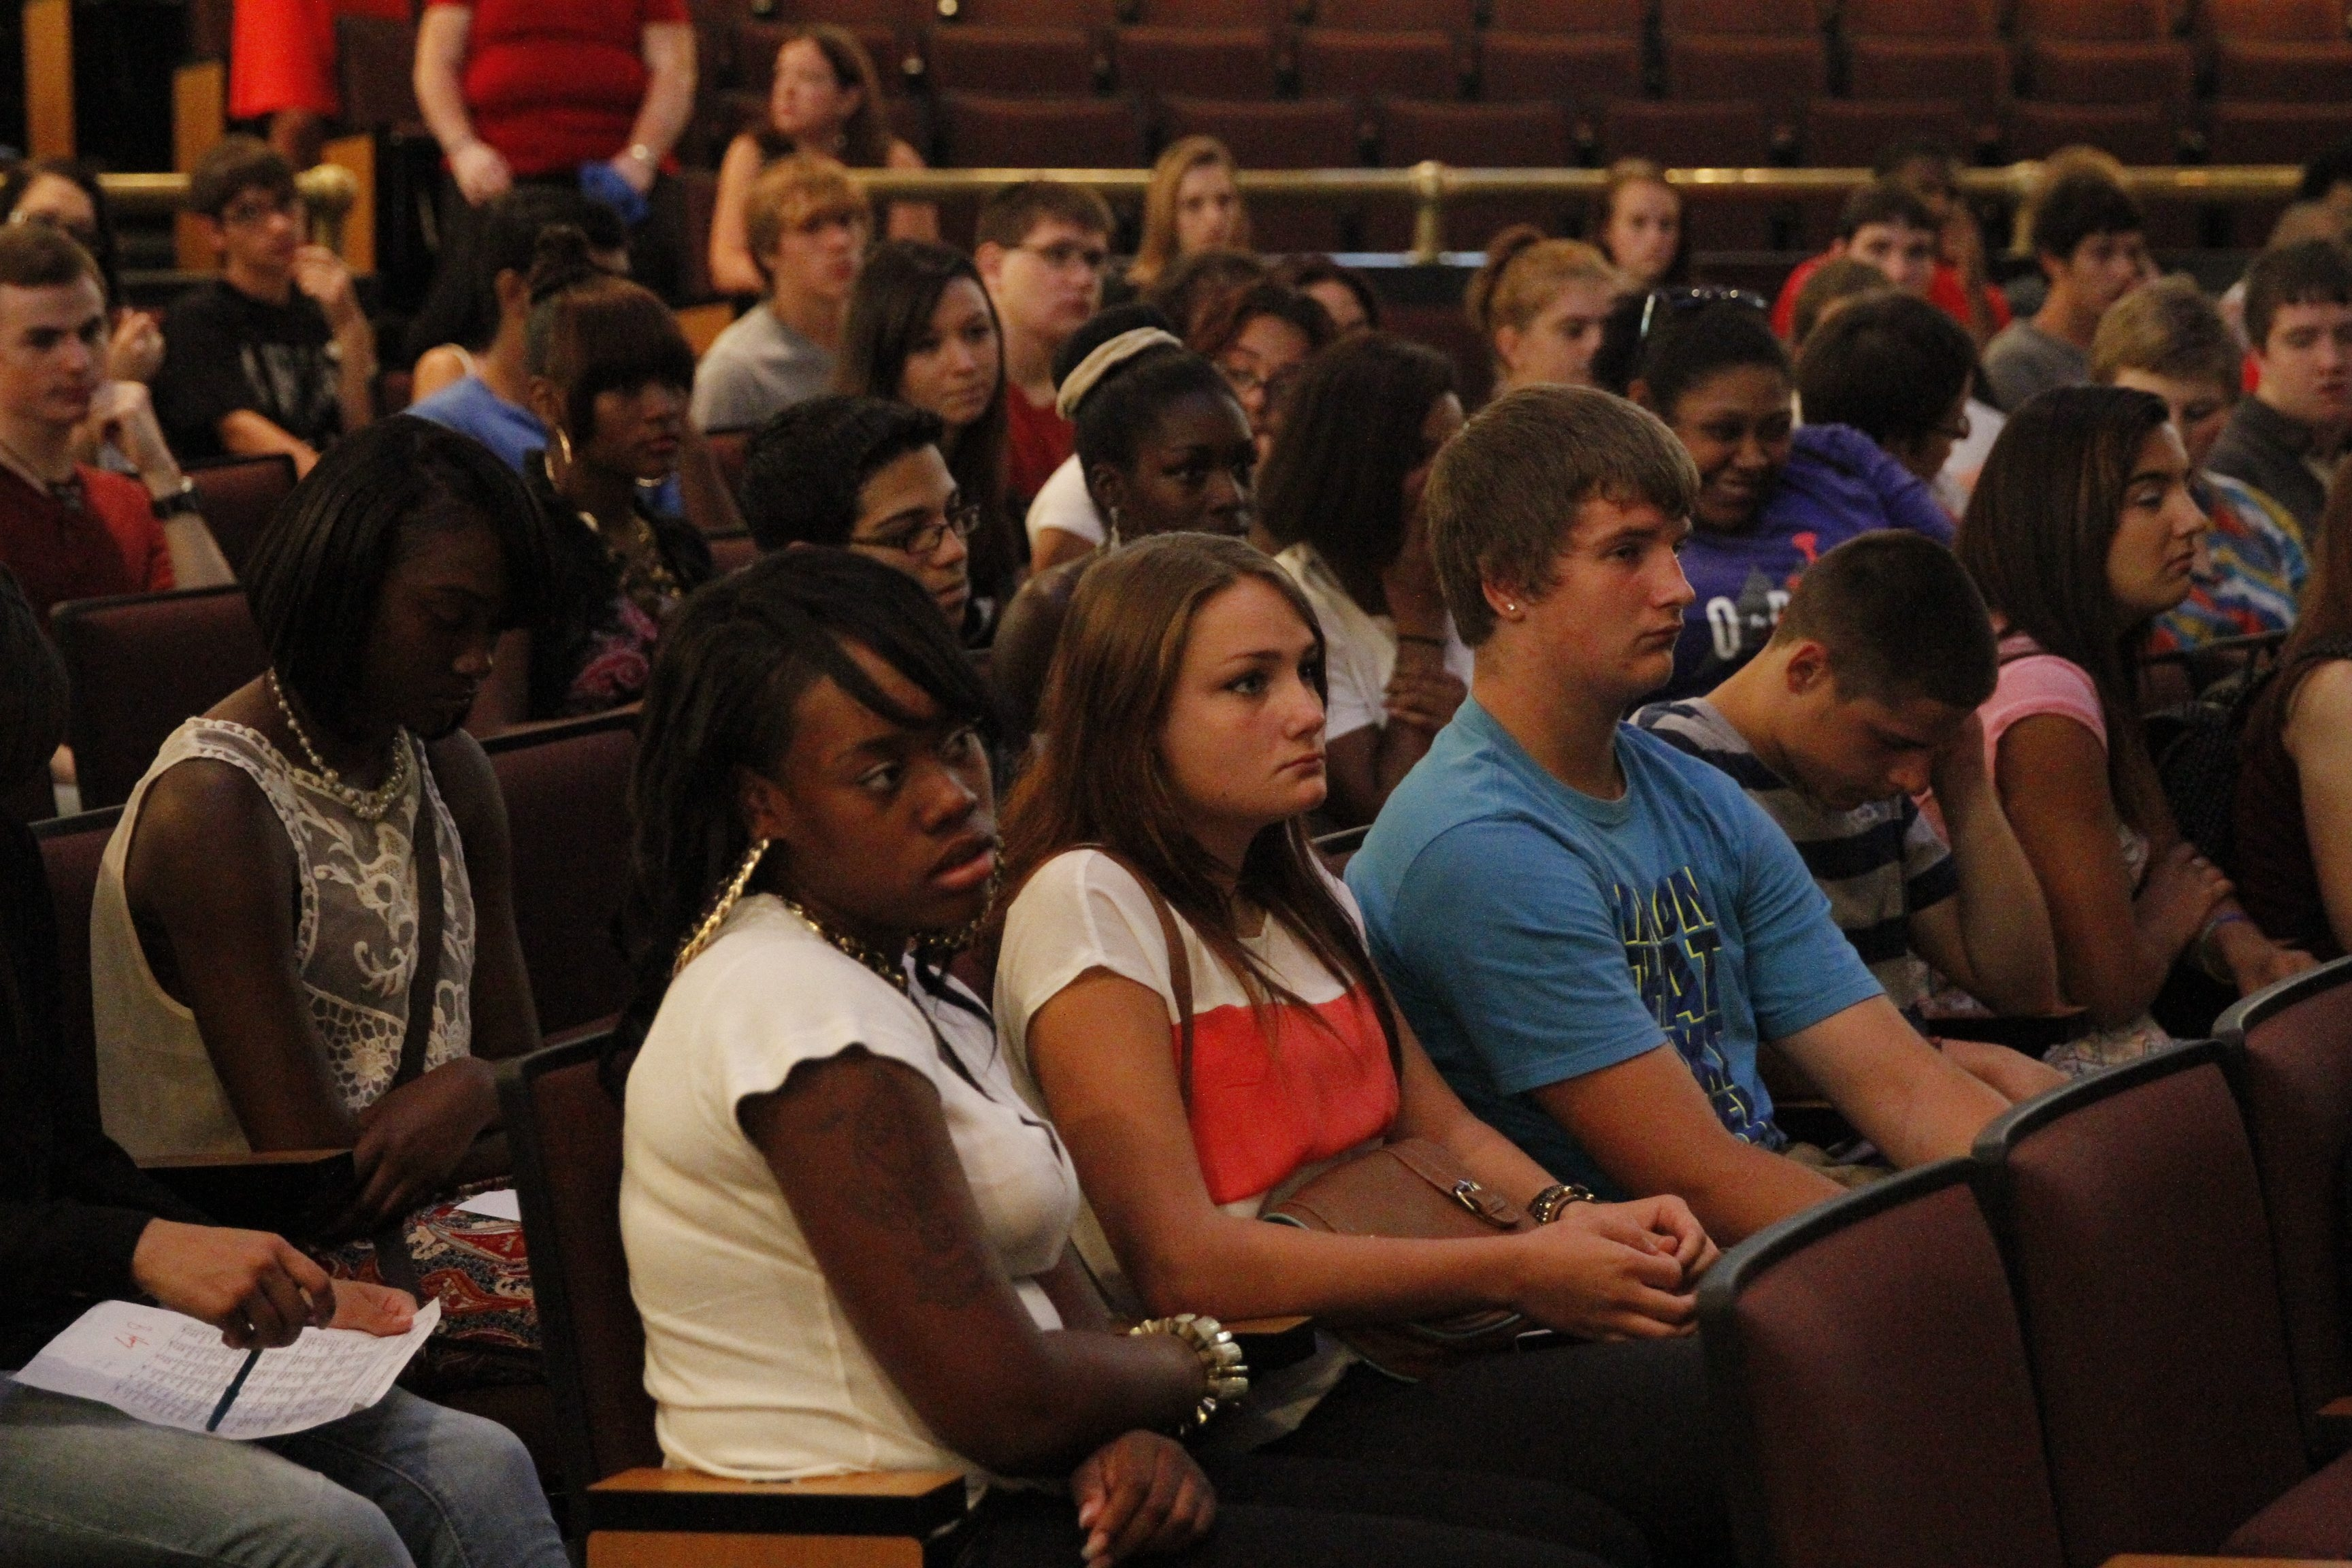 South Park High school seniors in an assembly on the 100th anniversary of  South Park High School  in Buffalo, NY on Thursday, Sept. 4, 2014. (John Hickey/Buffalo News)